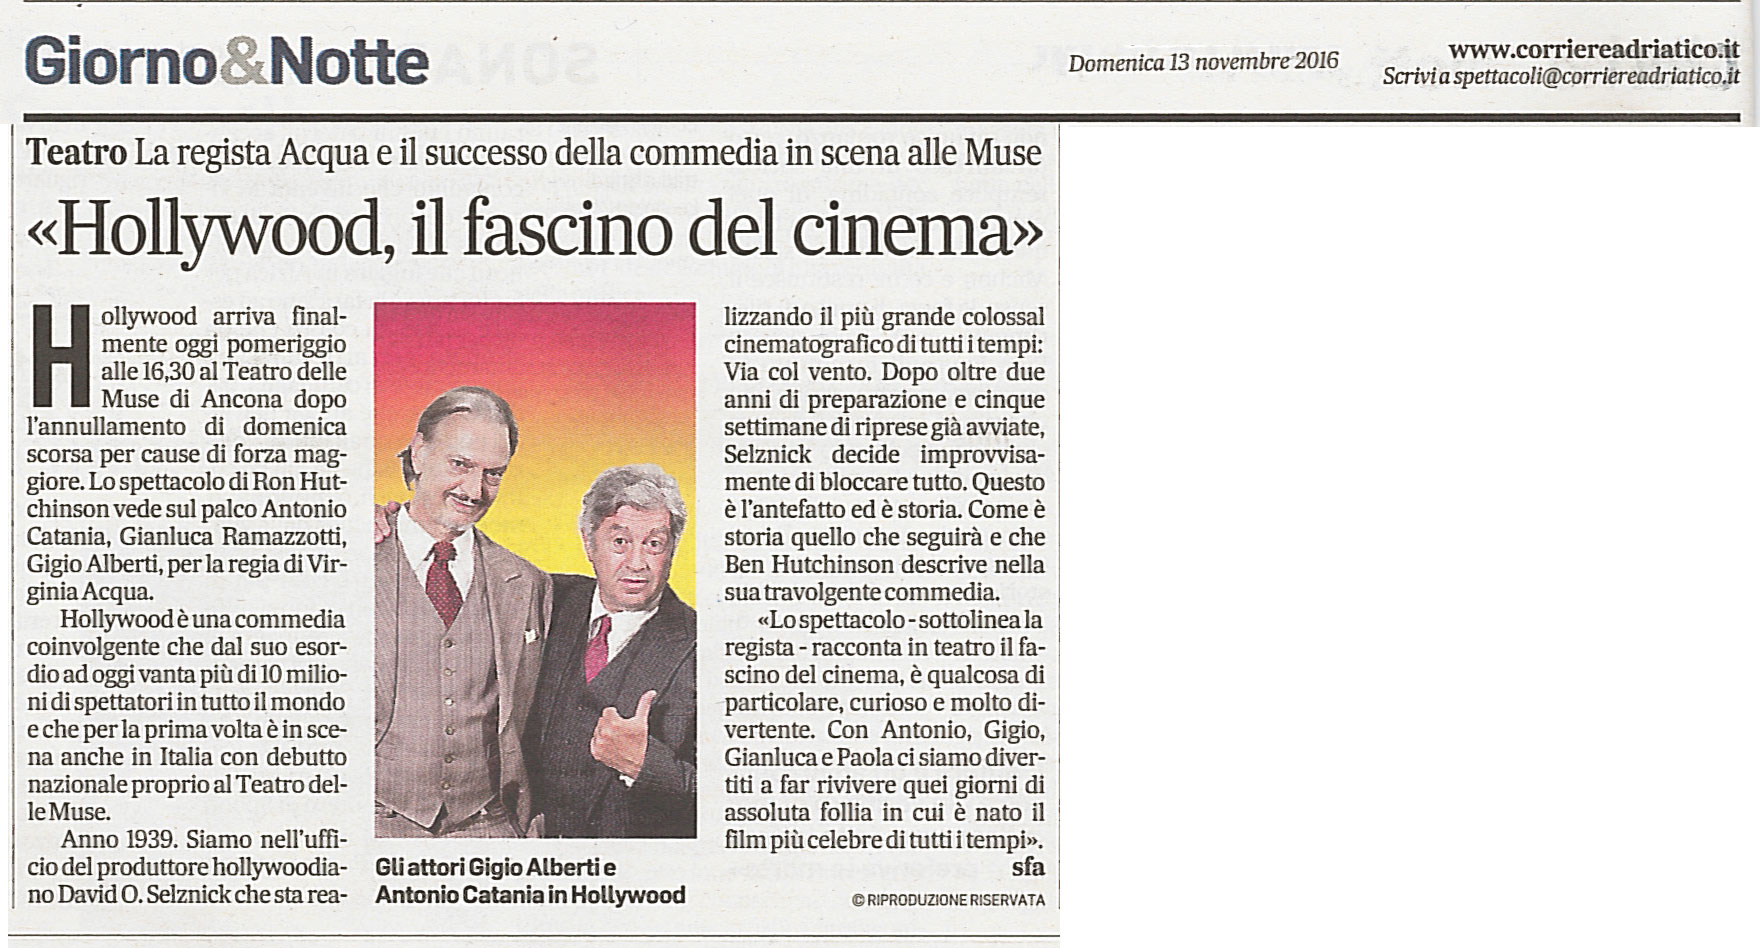 2016_11_13_hollywood-il-fascino-del-cinema_corriere-adriatico